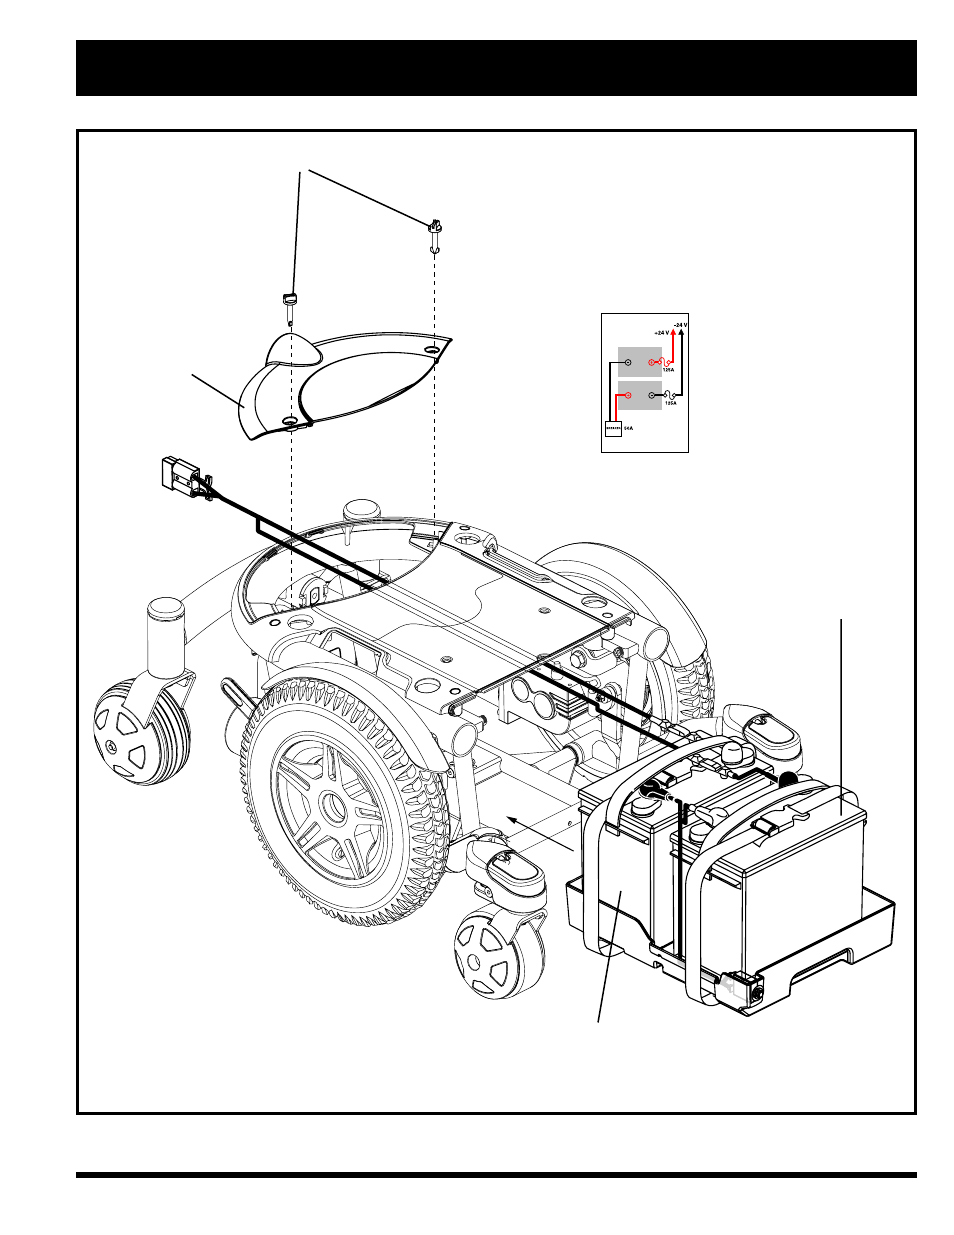 Jazzy power chair wiring diagram | manual e-books.